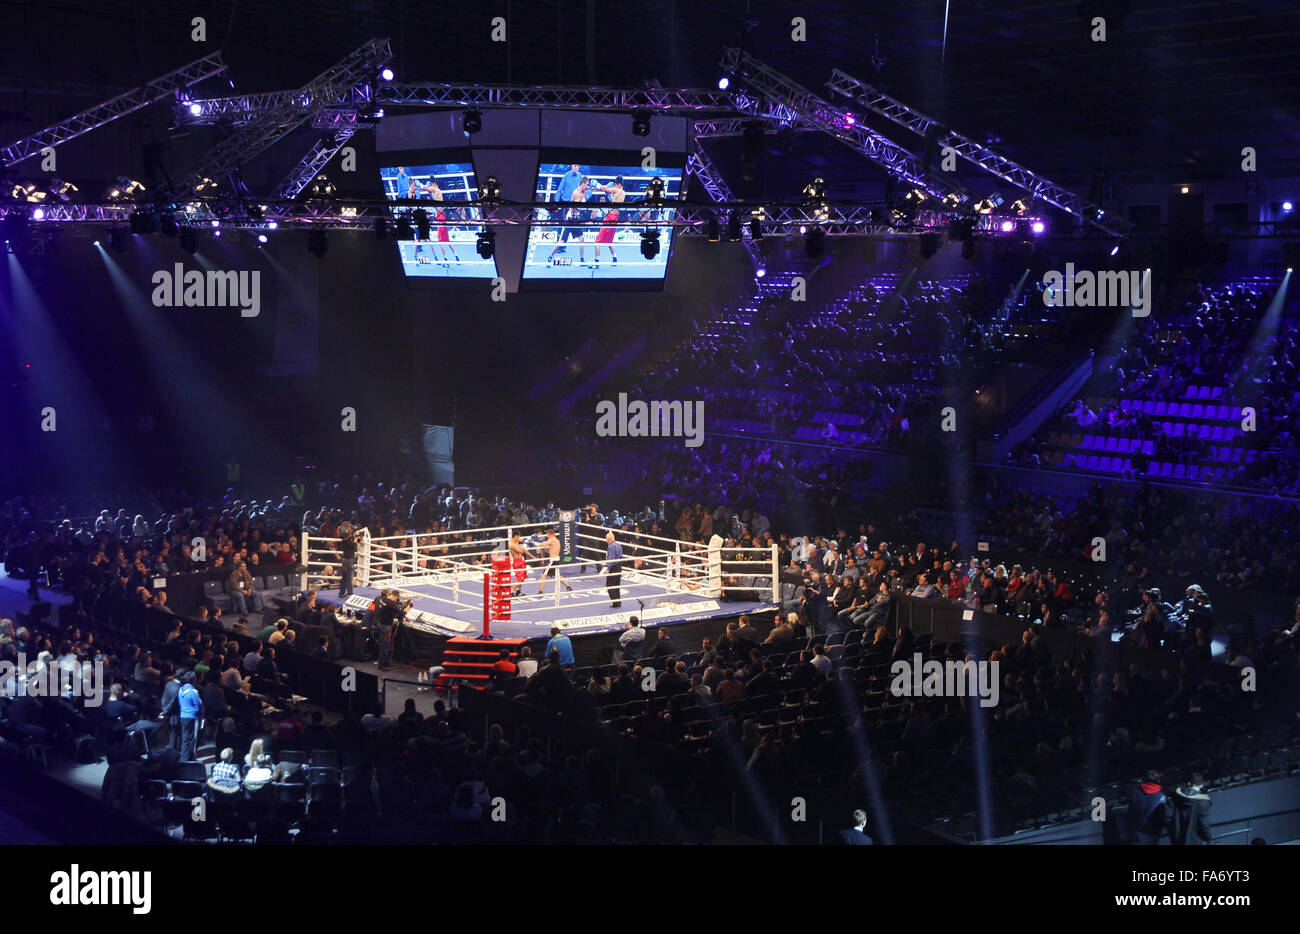 KYIV, UKRAINE - DECEMBER 13, 2014: Tribunes of Palace of Sports in Kyiv during 'Evening of Boxing' - Stock Image